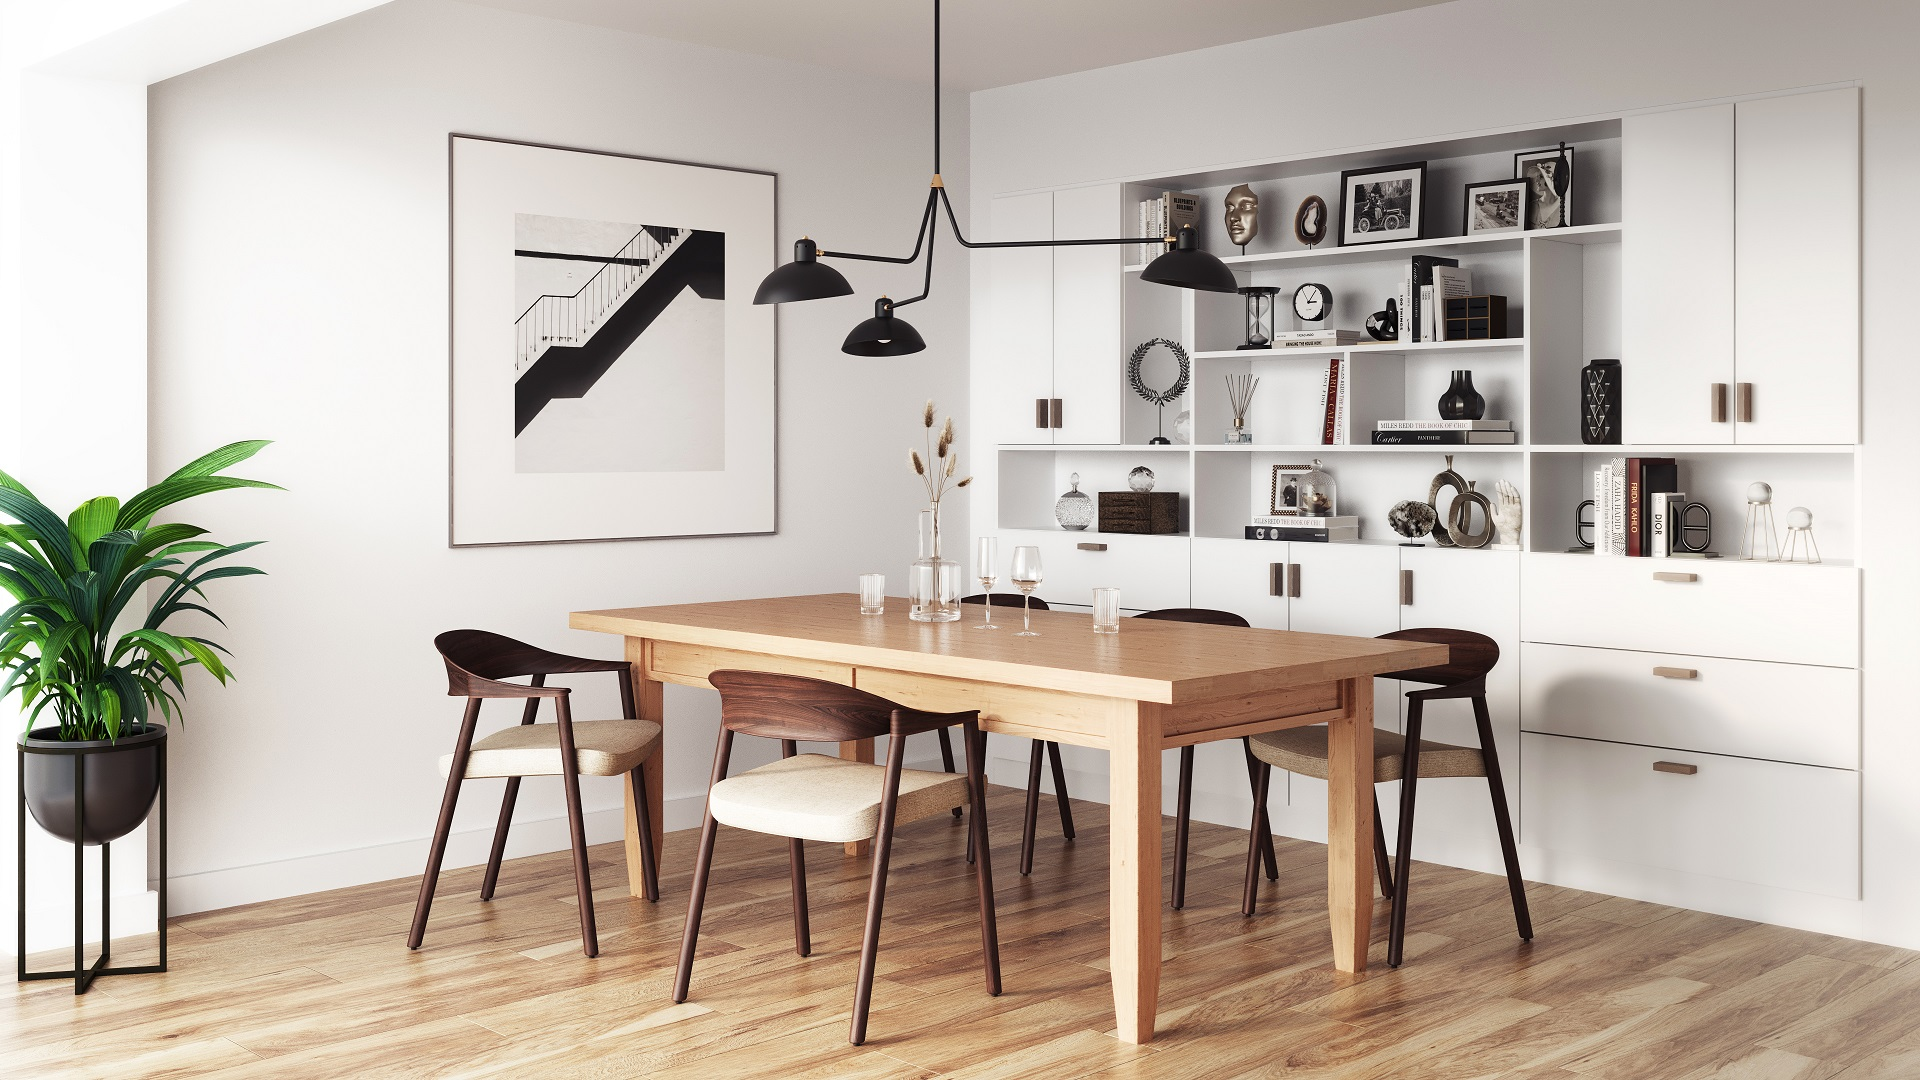 Ferme solid wood table in modern Scandinavian dining room